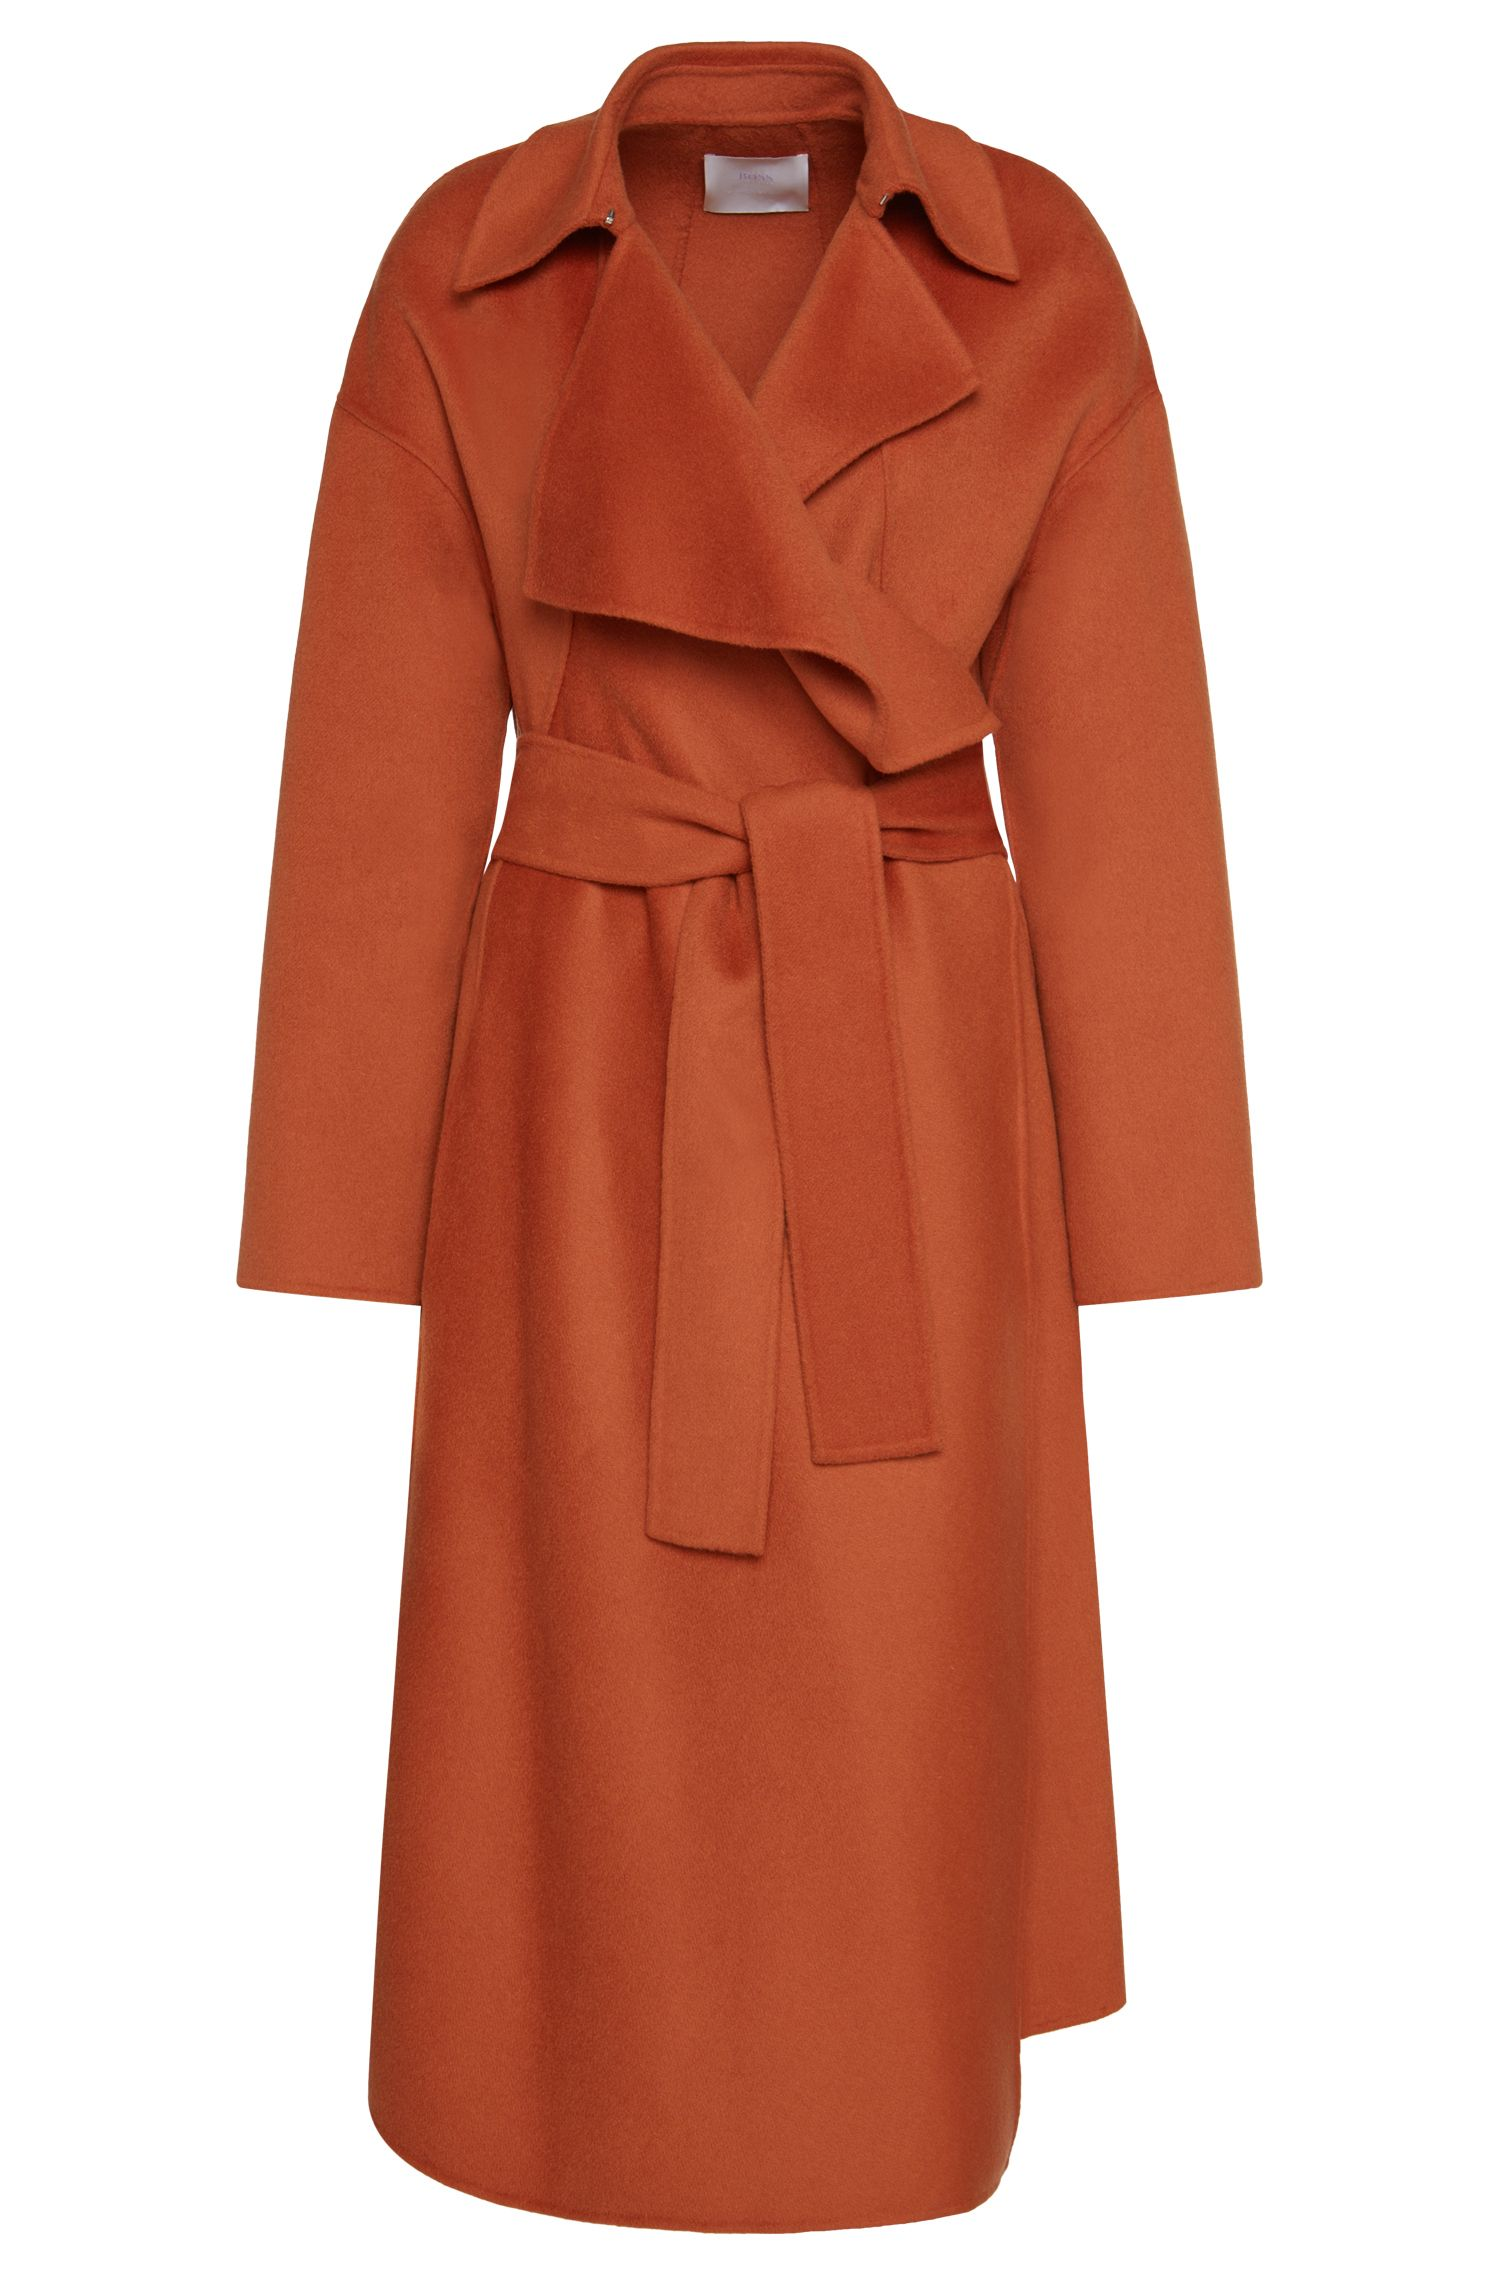 'FS_Cudrape' | Wool Cashmere Open Front Belted Coat